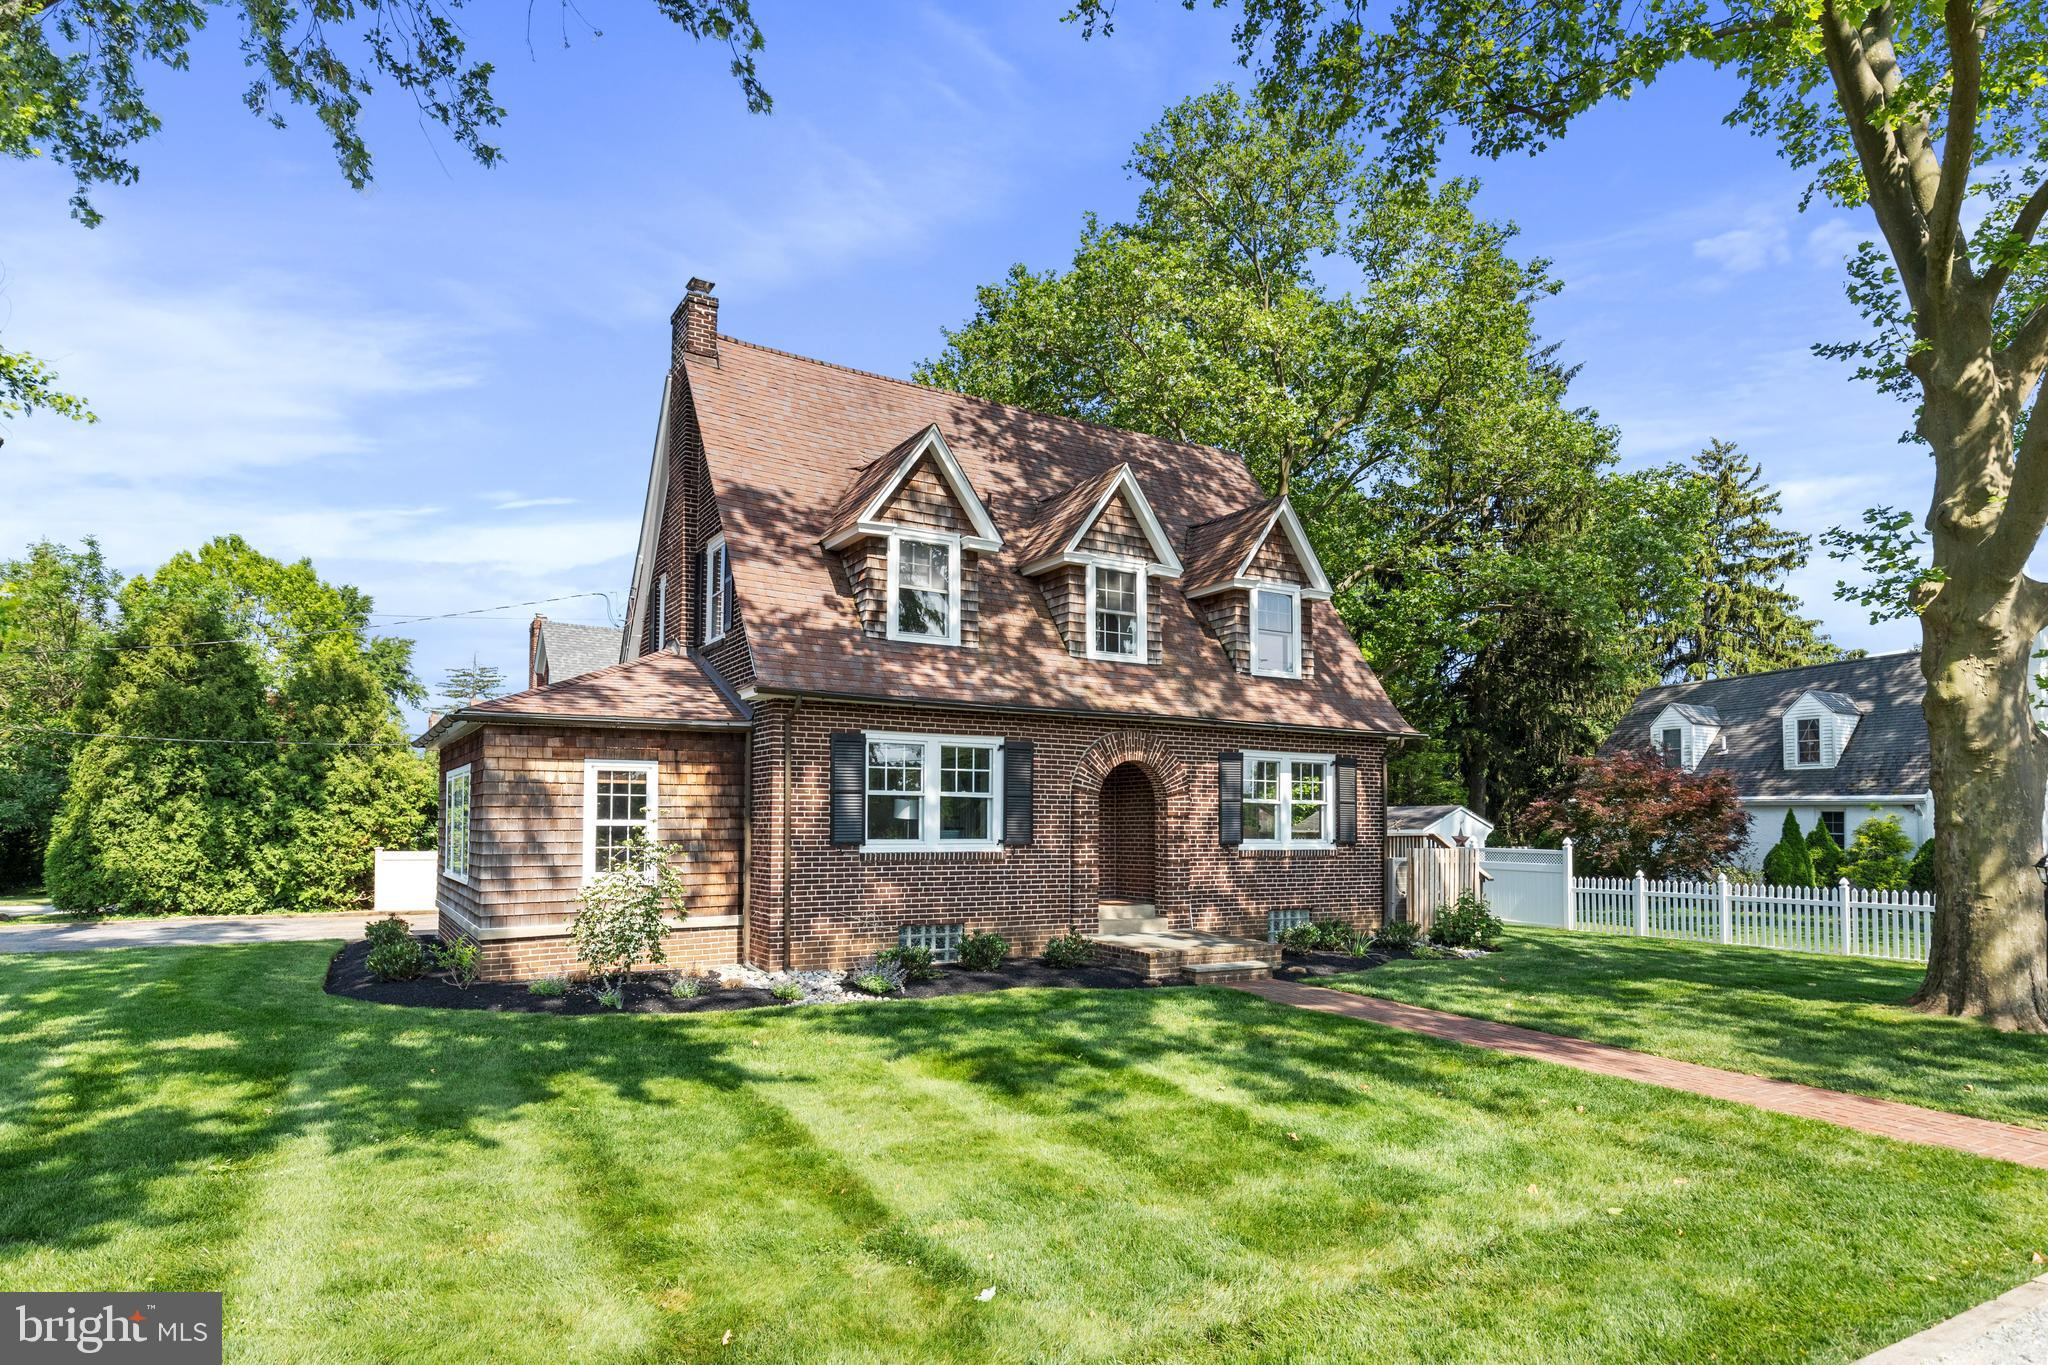 This spectacular Brick Colonial is located on a beautiful street just a few blocks from the Daylesford Train Station, Trediffrin-Easttown Middle School, and Conestoga High School in award-winning Tredyffrin-Easttown school district.  This charming 3/4 bedroom (option to use family room as a first floor bedroom, if desired), 1 full bath, and 1 half bath oozes with charm. Exquisitely appointed throughout and beaming with natural light, the 1st floor has an inviting entry way, a lovely living room with brick fireplace, a side porch or office overlooking manicured grounds, a kitchen that opens to a family room, a dining area with access to the side deck, and a powder room.  (Note: The 1st floor powder room is plumbed for a shower.)  The second floor includes a large master bedroom with walk-in closet, a full bathroom with glass shower/tub combo, and 2 other spacious bedrooms.  There is plenty of storage in both the walk-up attic as well as the basement which includes the laundry and two 2 other nicely sized rooms, which would be easy to finish and enjoy as a playroom or home gym.  Enjoy this flat, well-landscaped yard, overseen by an expansive deck which serves as an oasis for relaxing or entertaining and a large shed for outdoor equipment storage. It is an easy walk to Paoli/Thorndale R5 train station with service to Philadelphia, and close to Paoli's Amtrak service to New York.  Wonderful shopping and delicious restaurants are also very close.  This property is a must-see! **SHOWINGS WILL BEGIN MONDAY, JUNE 14.